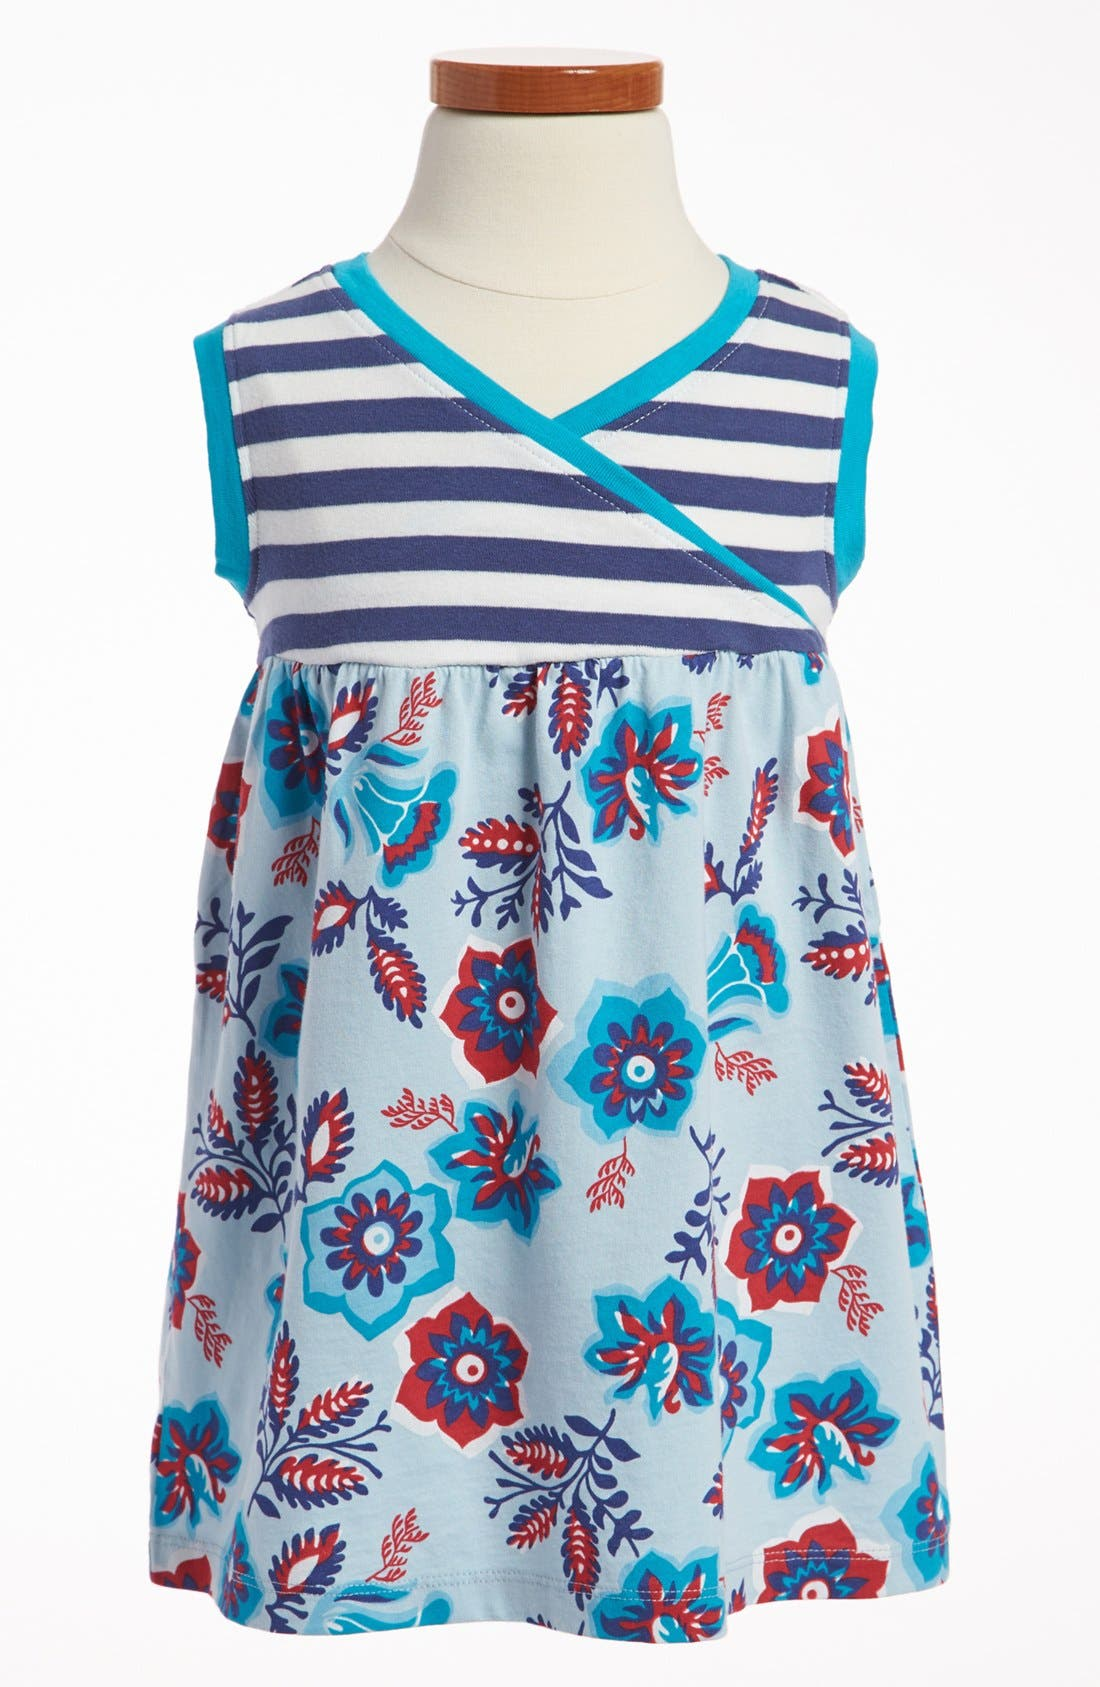 Main Image - Tea Collection 'Sea Gypsy' Dress (Toddler)